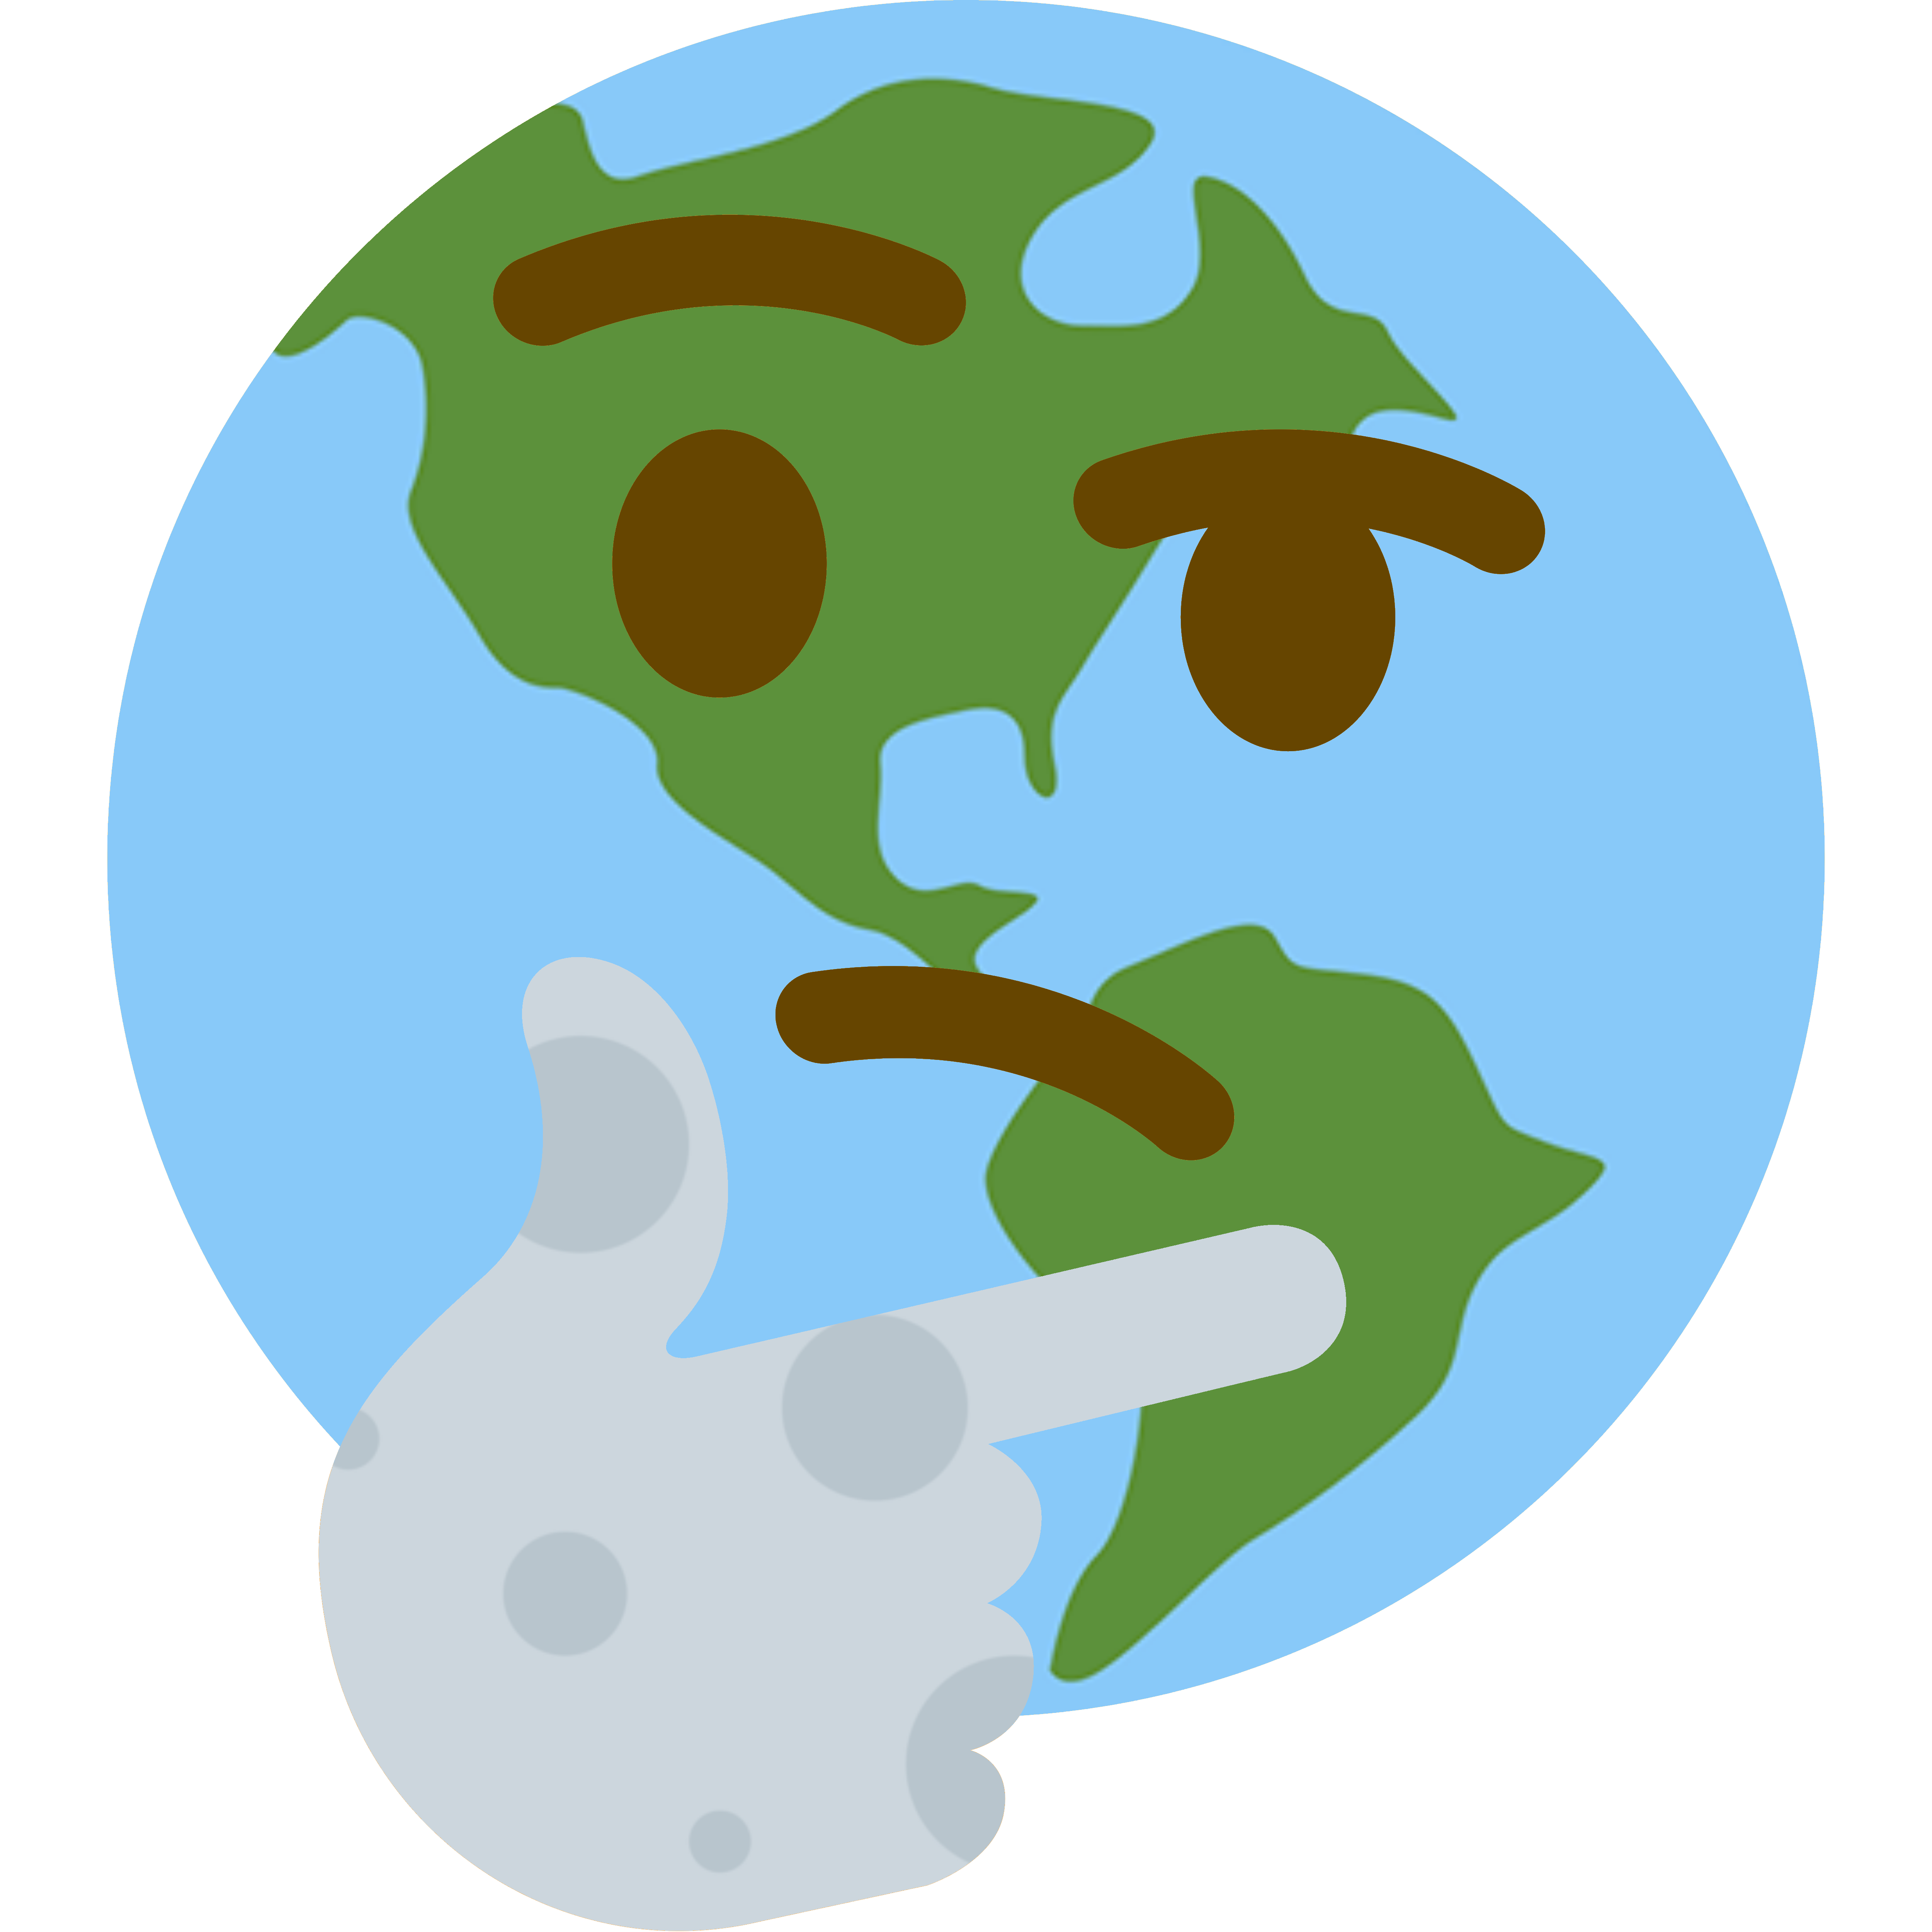 Thoughts clipart questioned face. Earth hmm thinking emoji